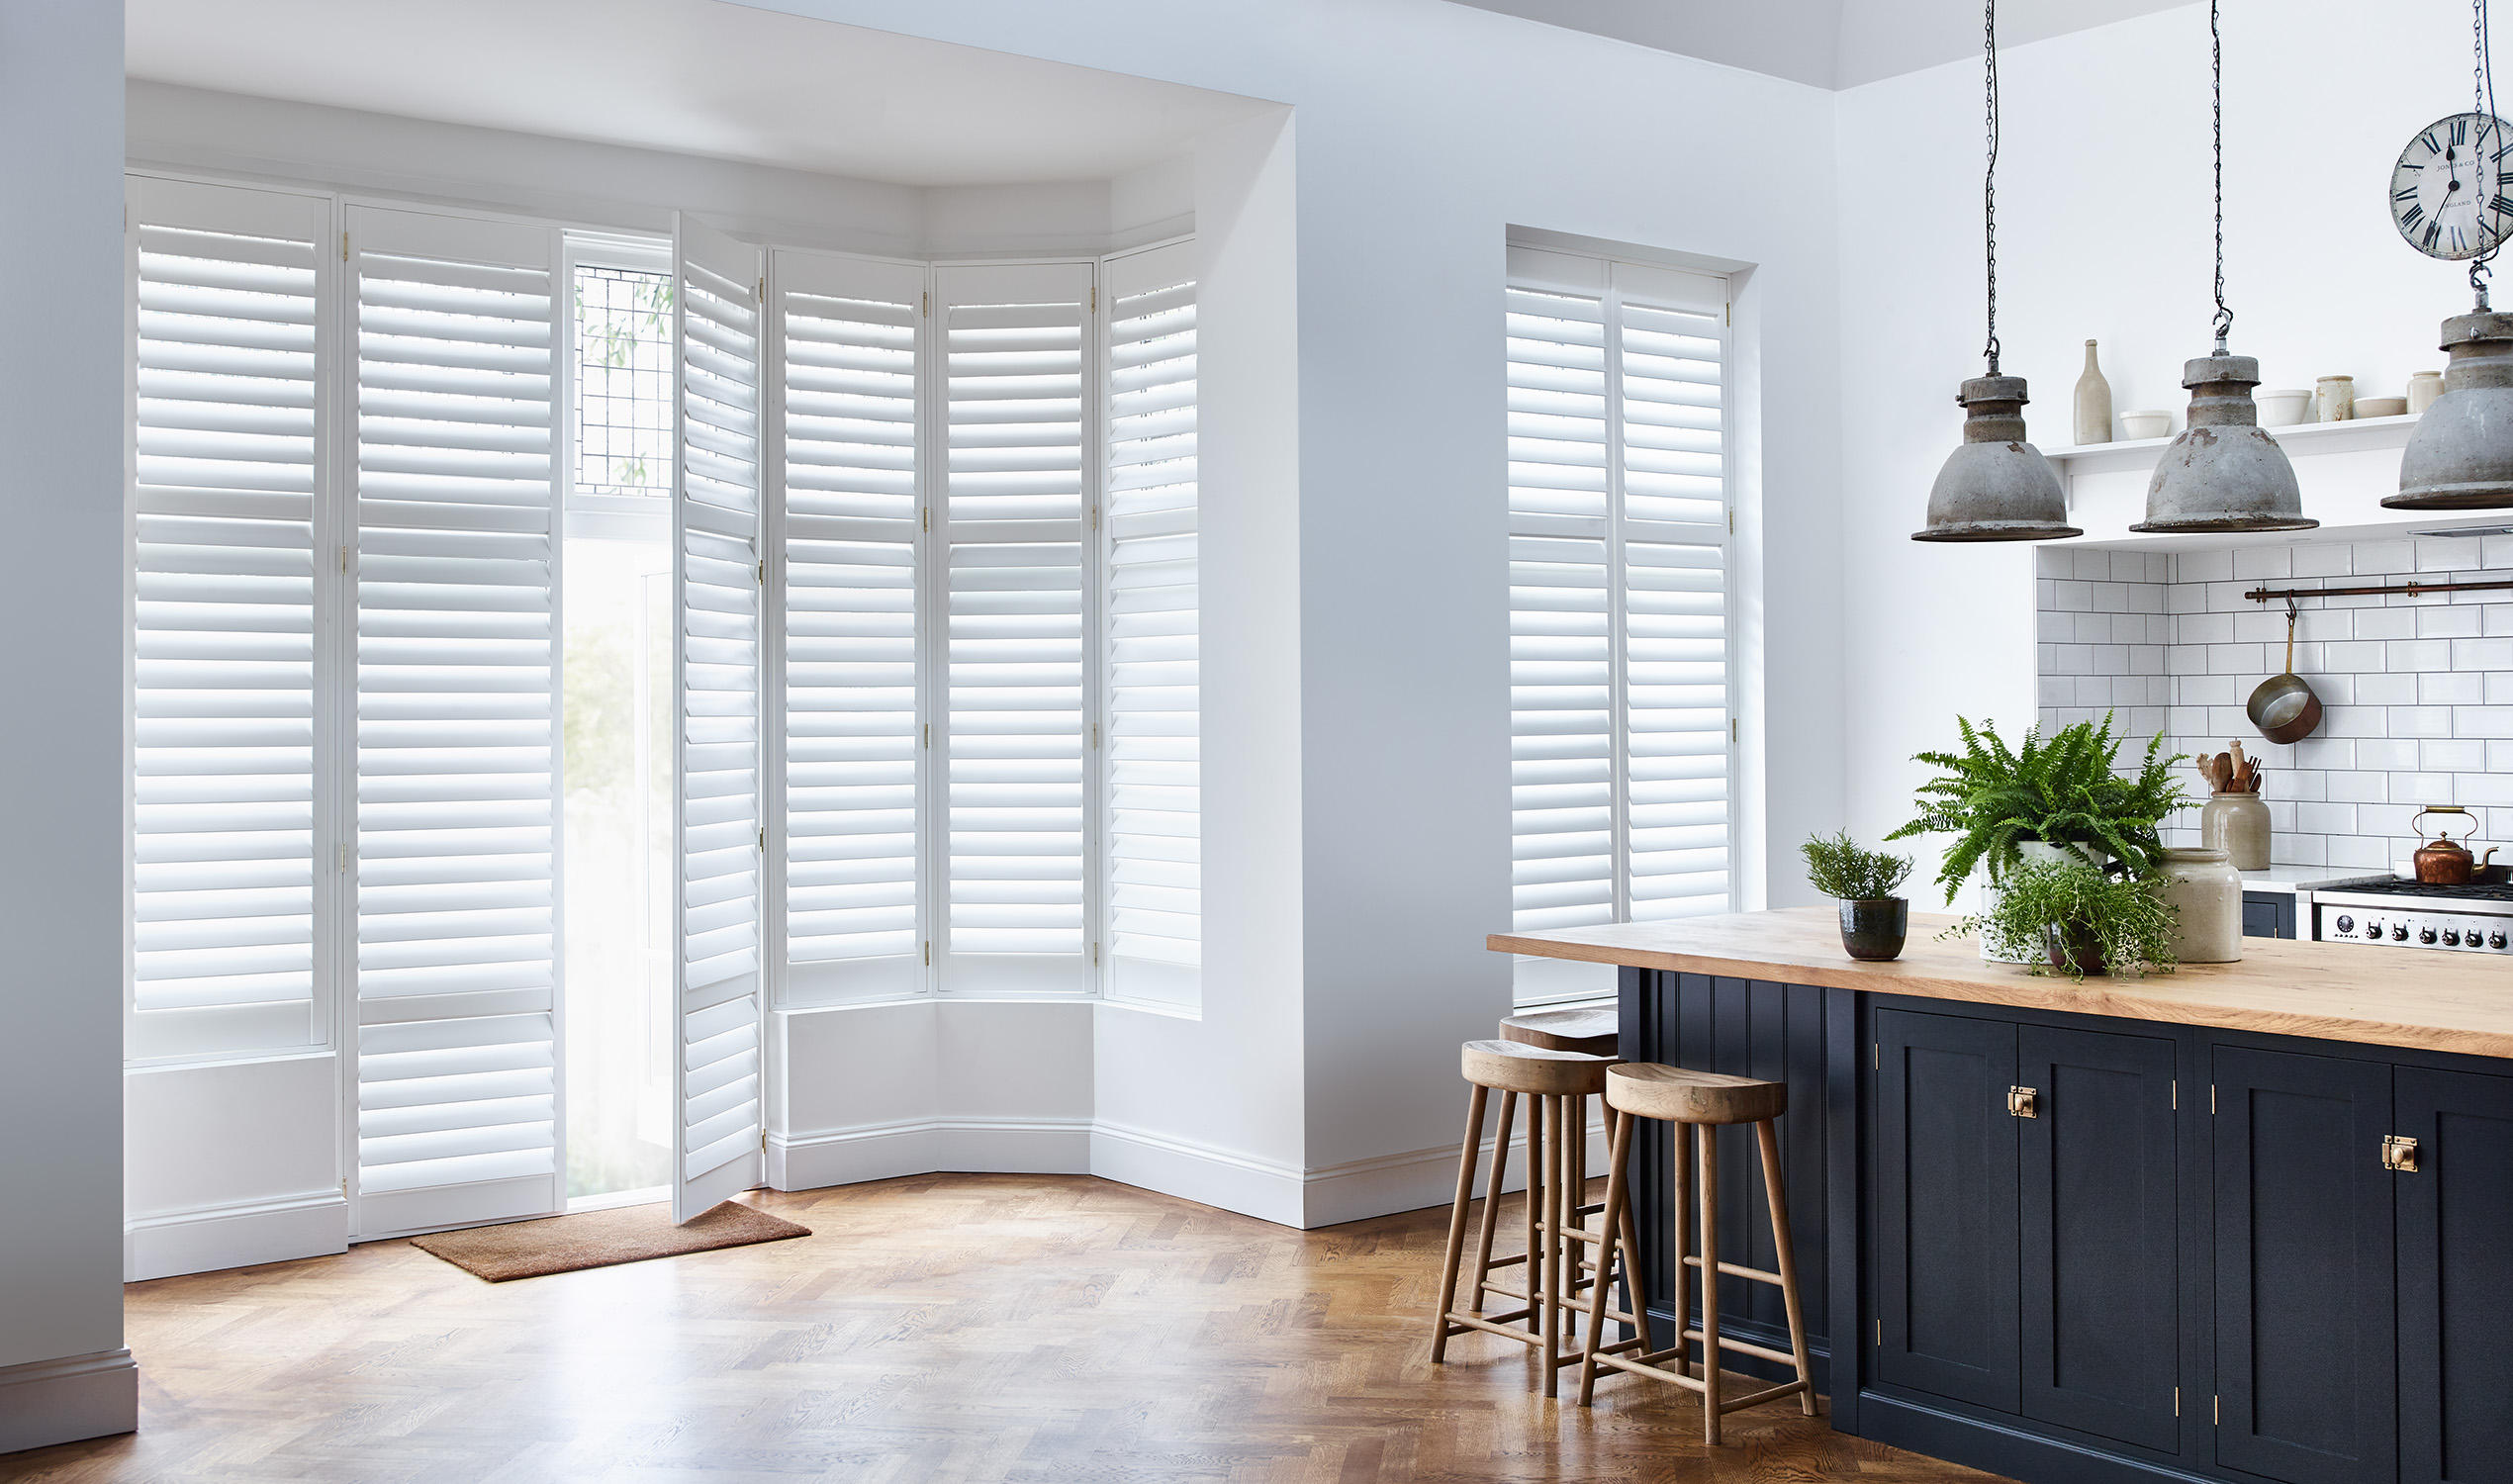 Are plantation shutters worth the money?